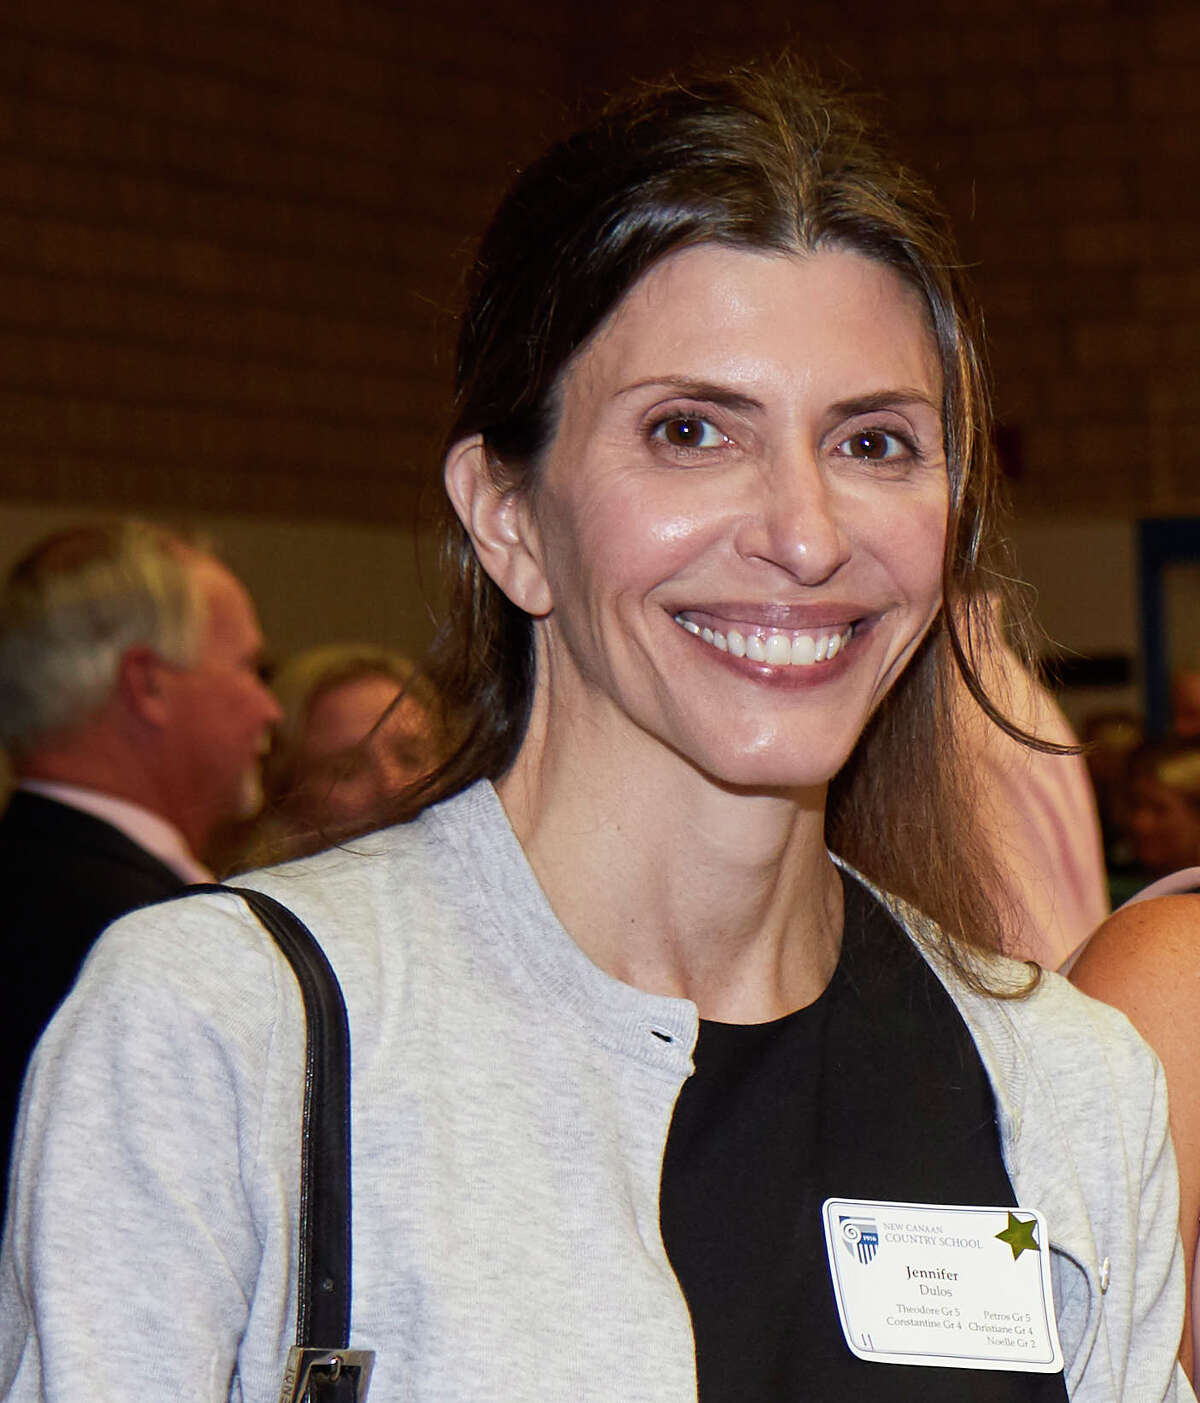 Jennifer Dulos was last seen on the morning of May 24, 2019. She is presumed dead, according to police, but her body has not been found.